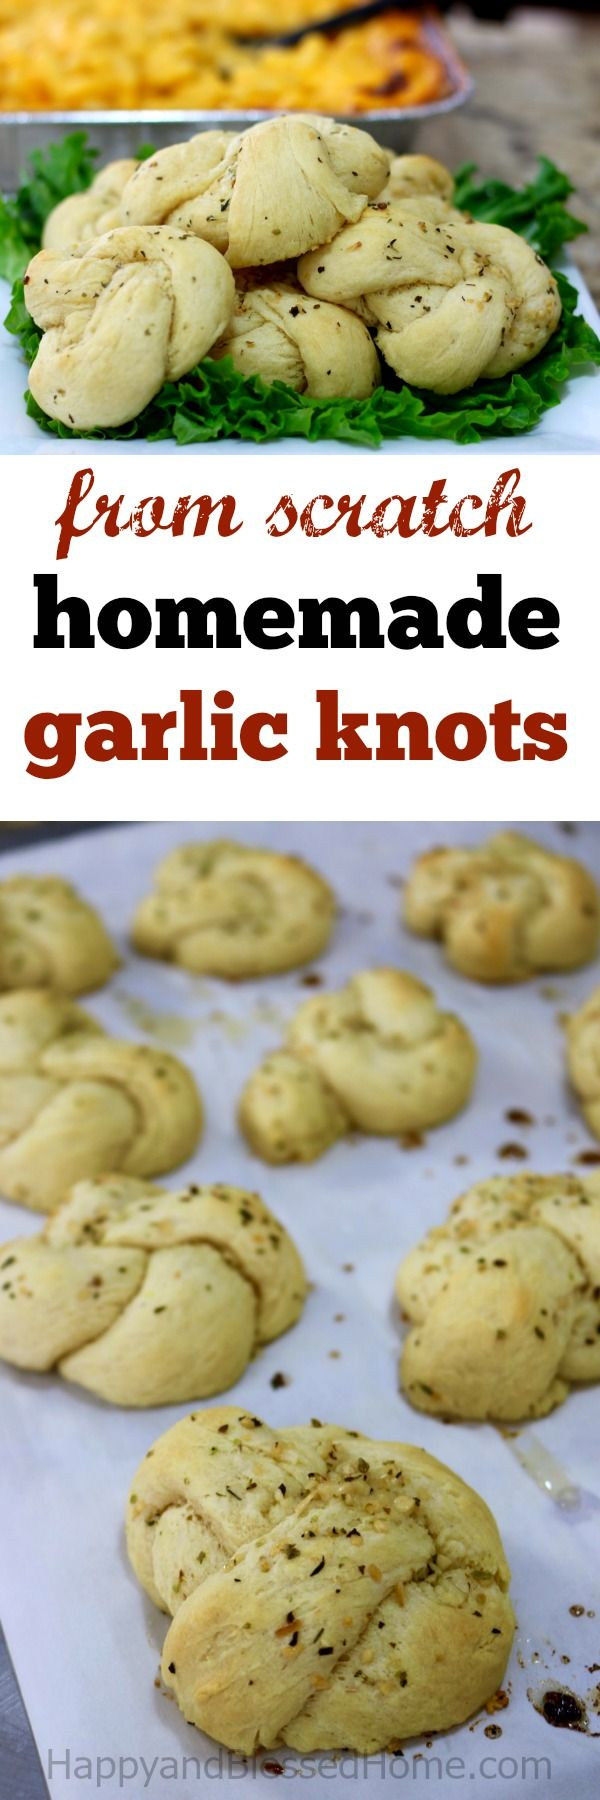 Easy to make homemade garlic knots from scratch - excellent flavor and flaky dough. A bread recipe for a savory crust and wonderful garlic sauce.  My family devoured these! Ad Pair with #StouffersGoodness for a simple family meal. Delicious!